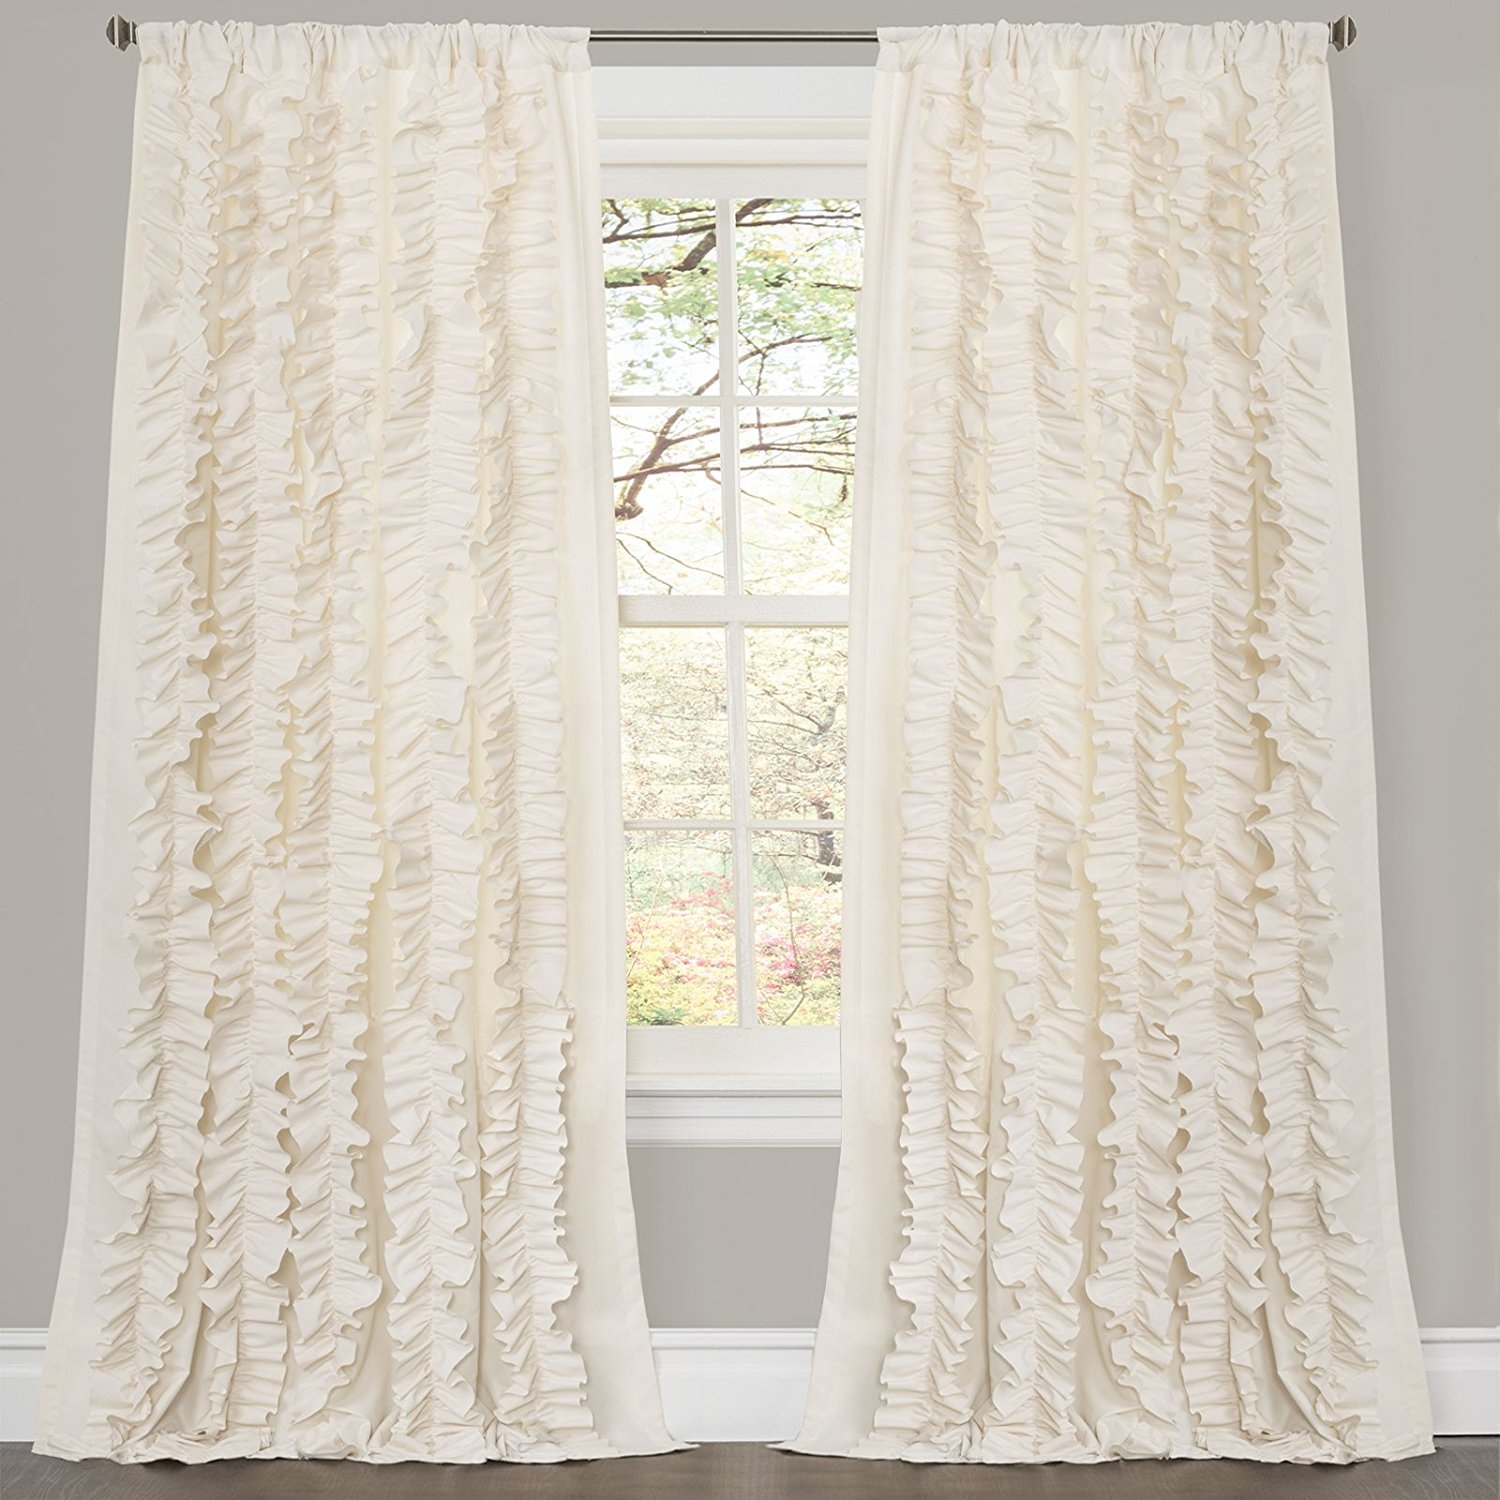 Amazon Lush Decor Belle Curtain 84 X 54 Inches Ivory Home Inside White Ruffle Curtains (View 24 of 25)